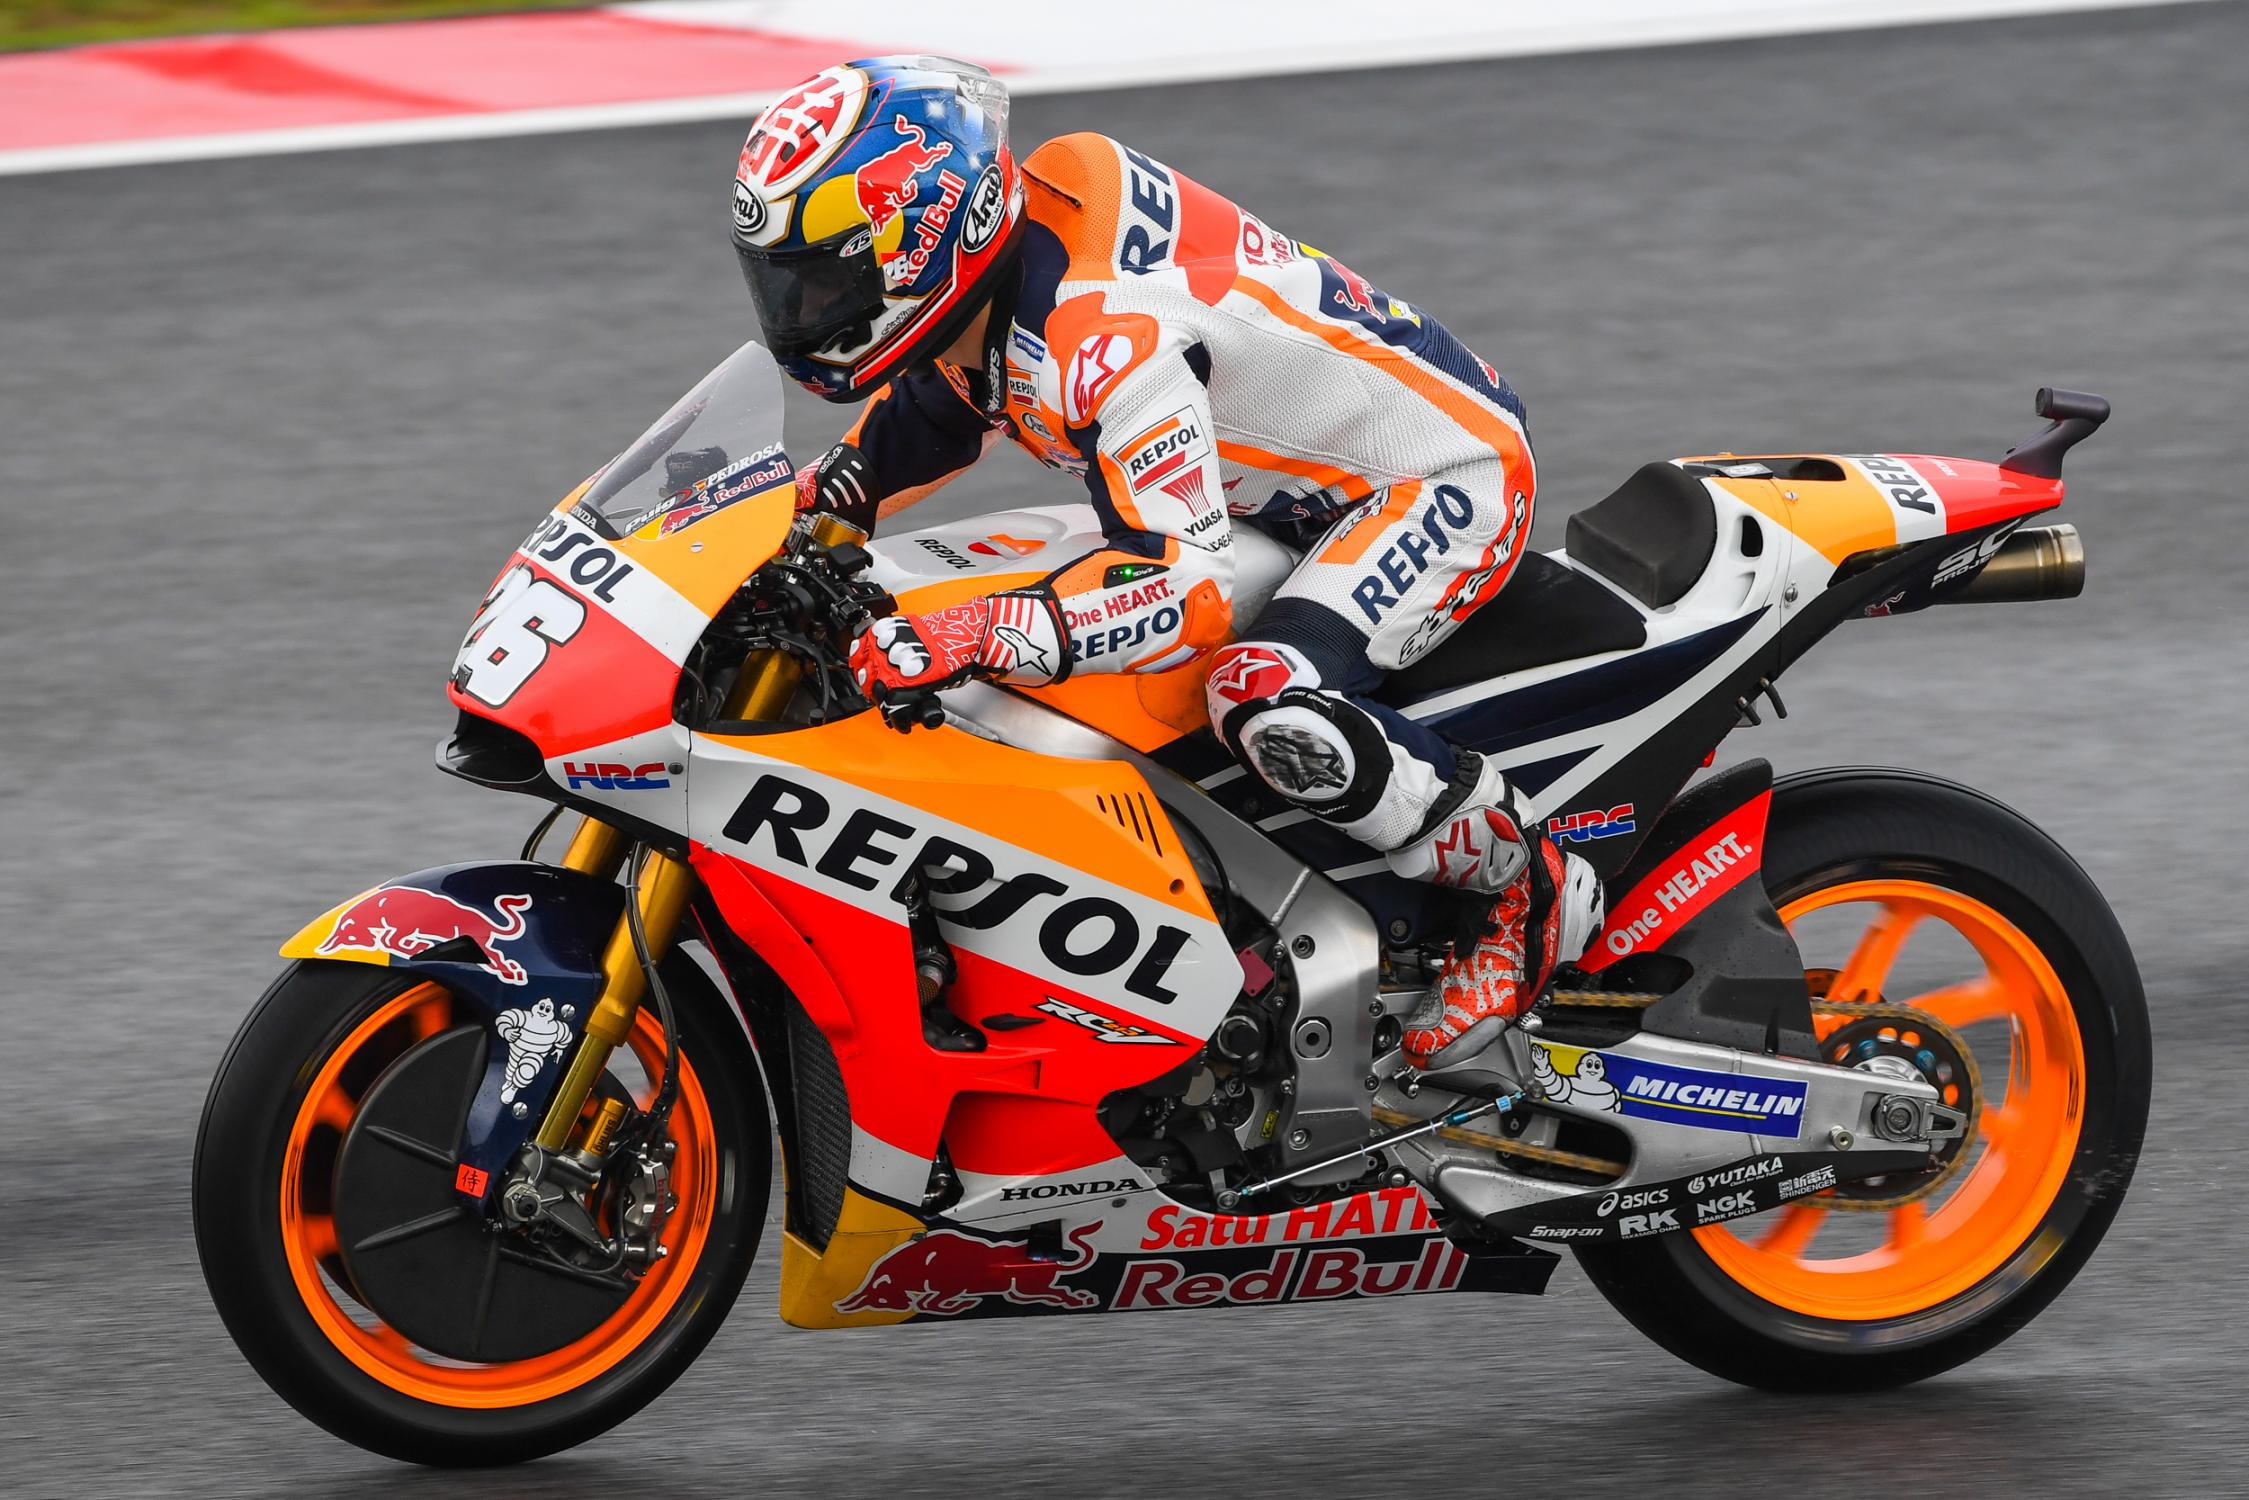 26-dani-pedrosa-espdsc_1667.gallery_full_top_fullscreen.jpg